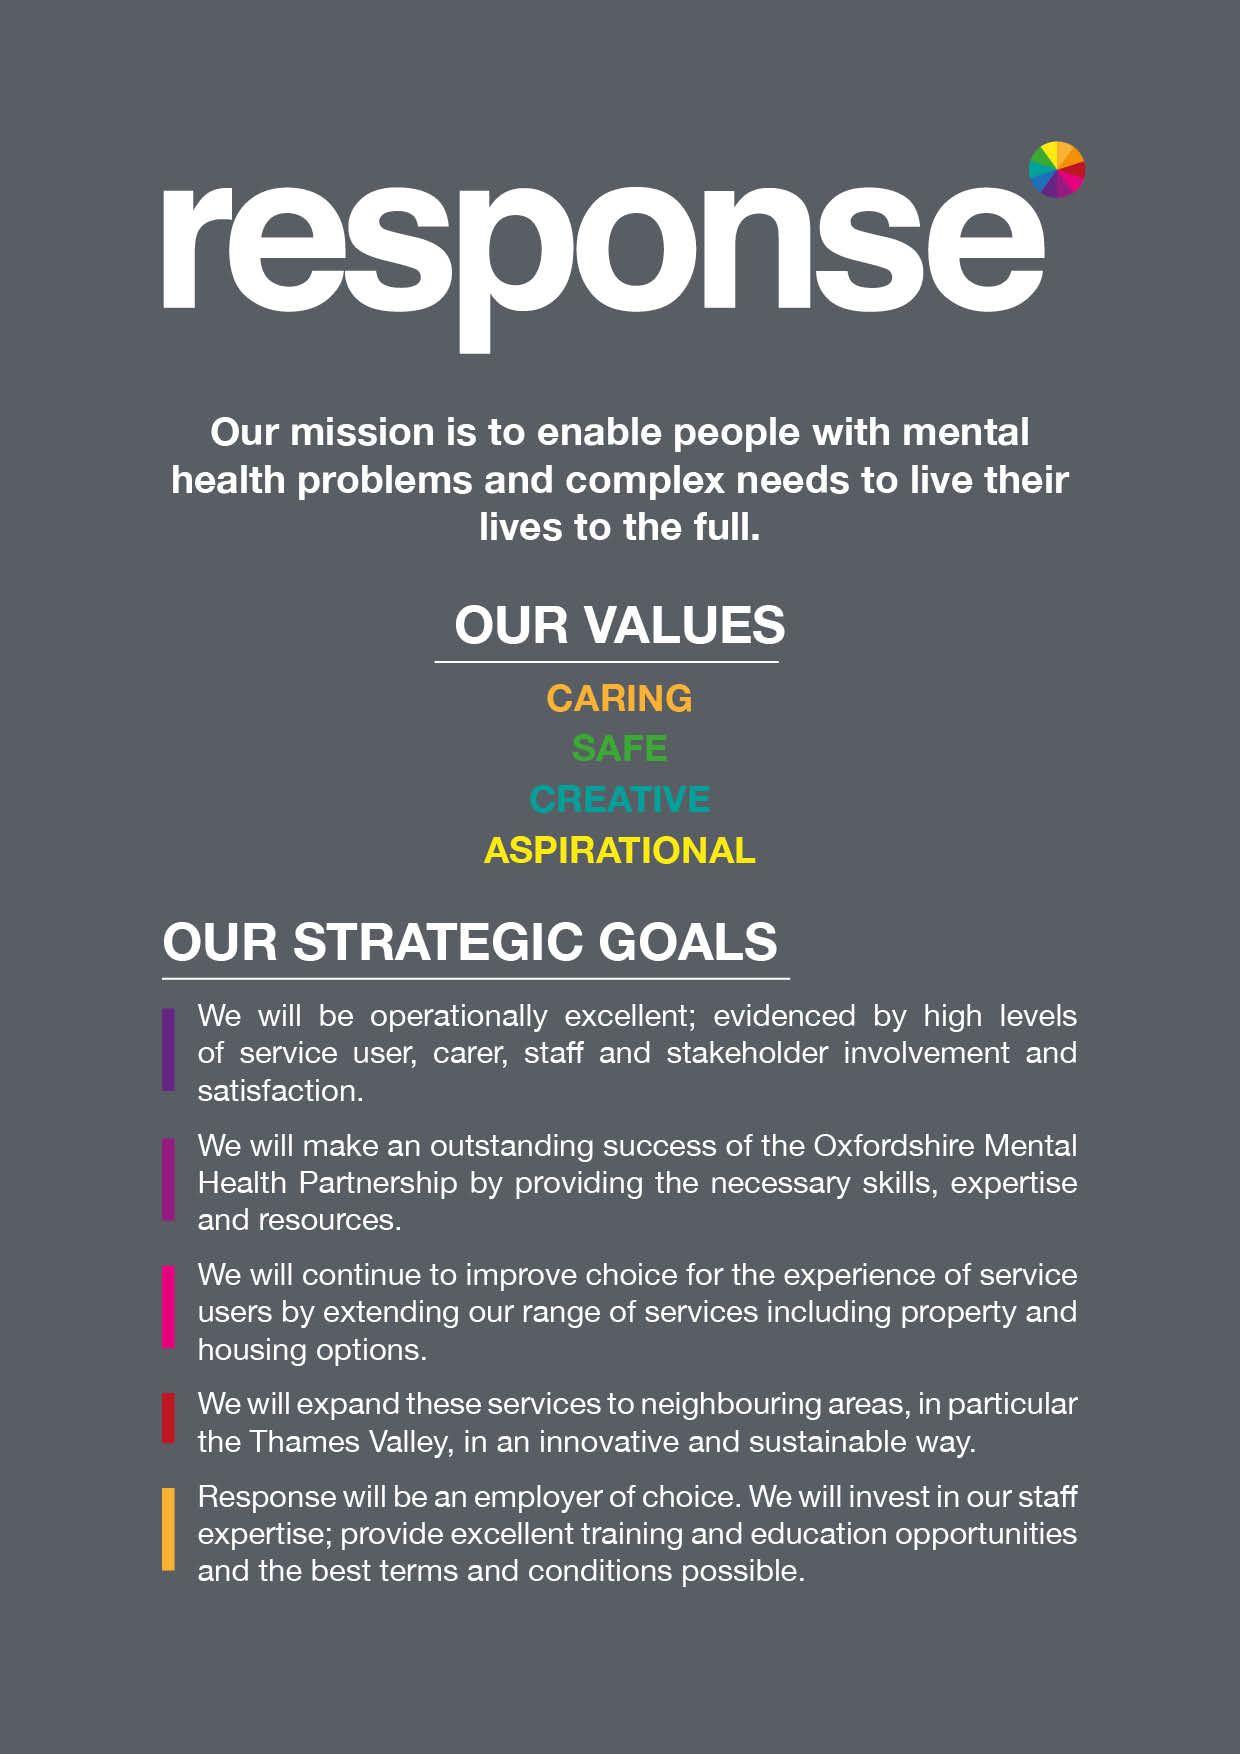 Response Mission and Values